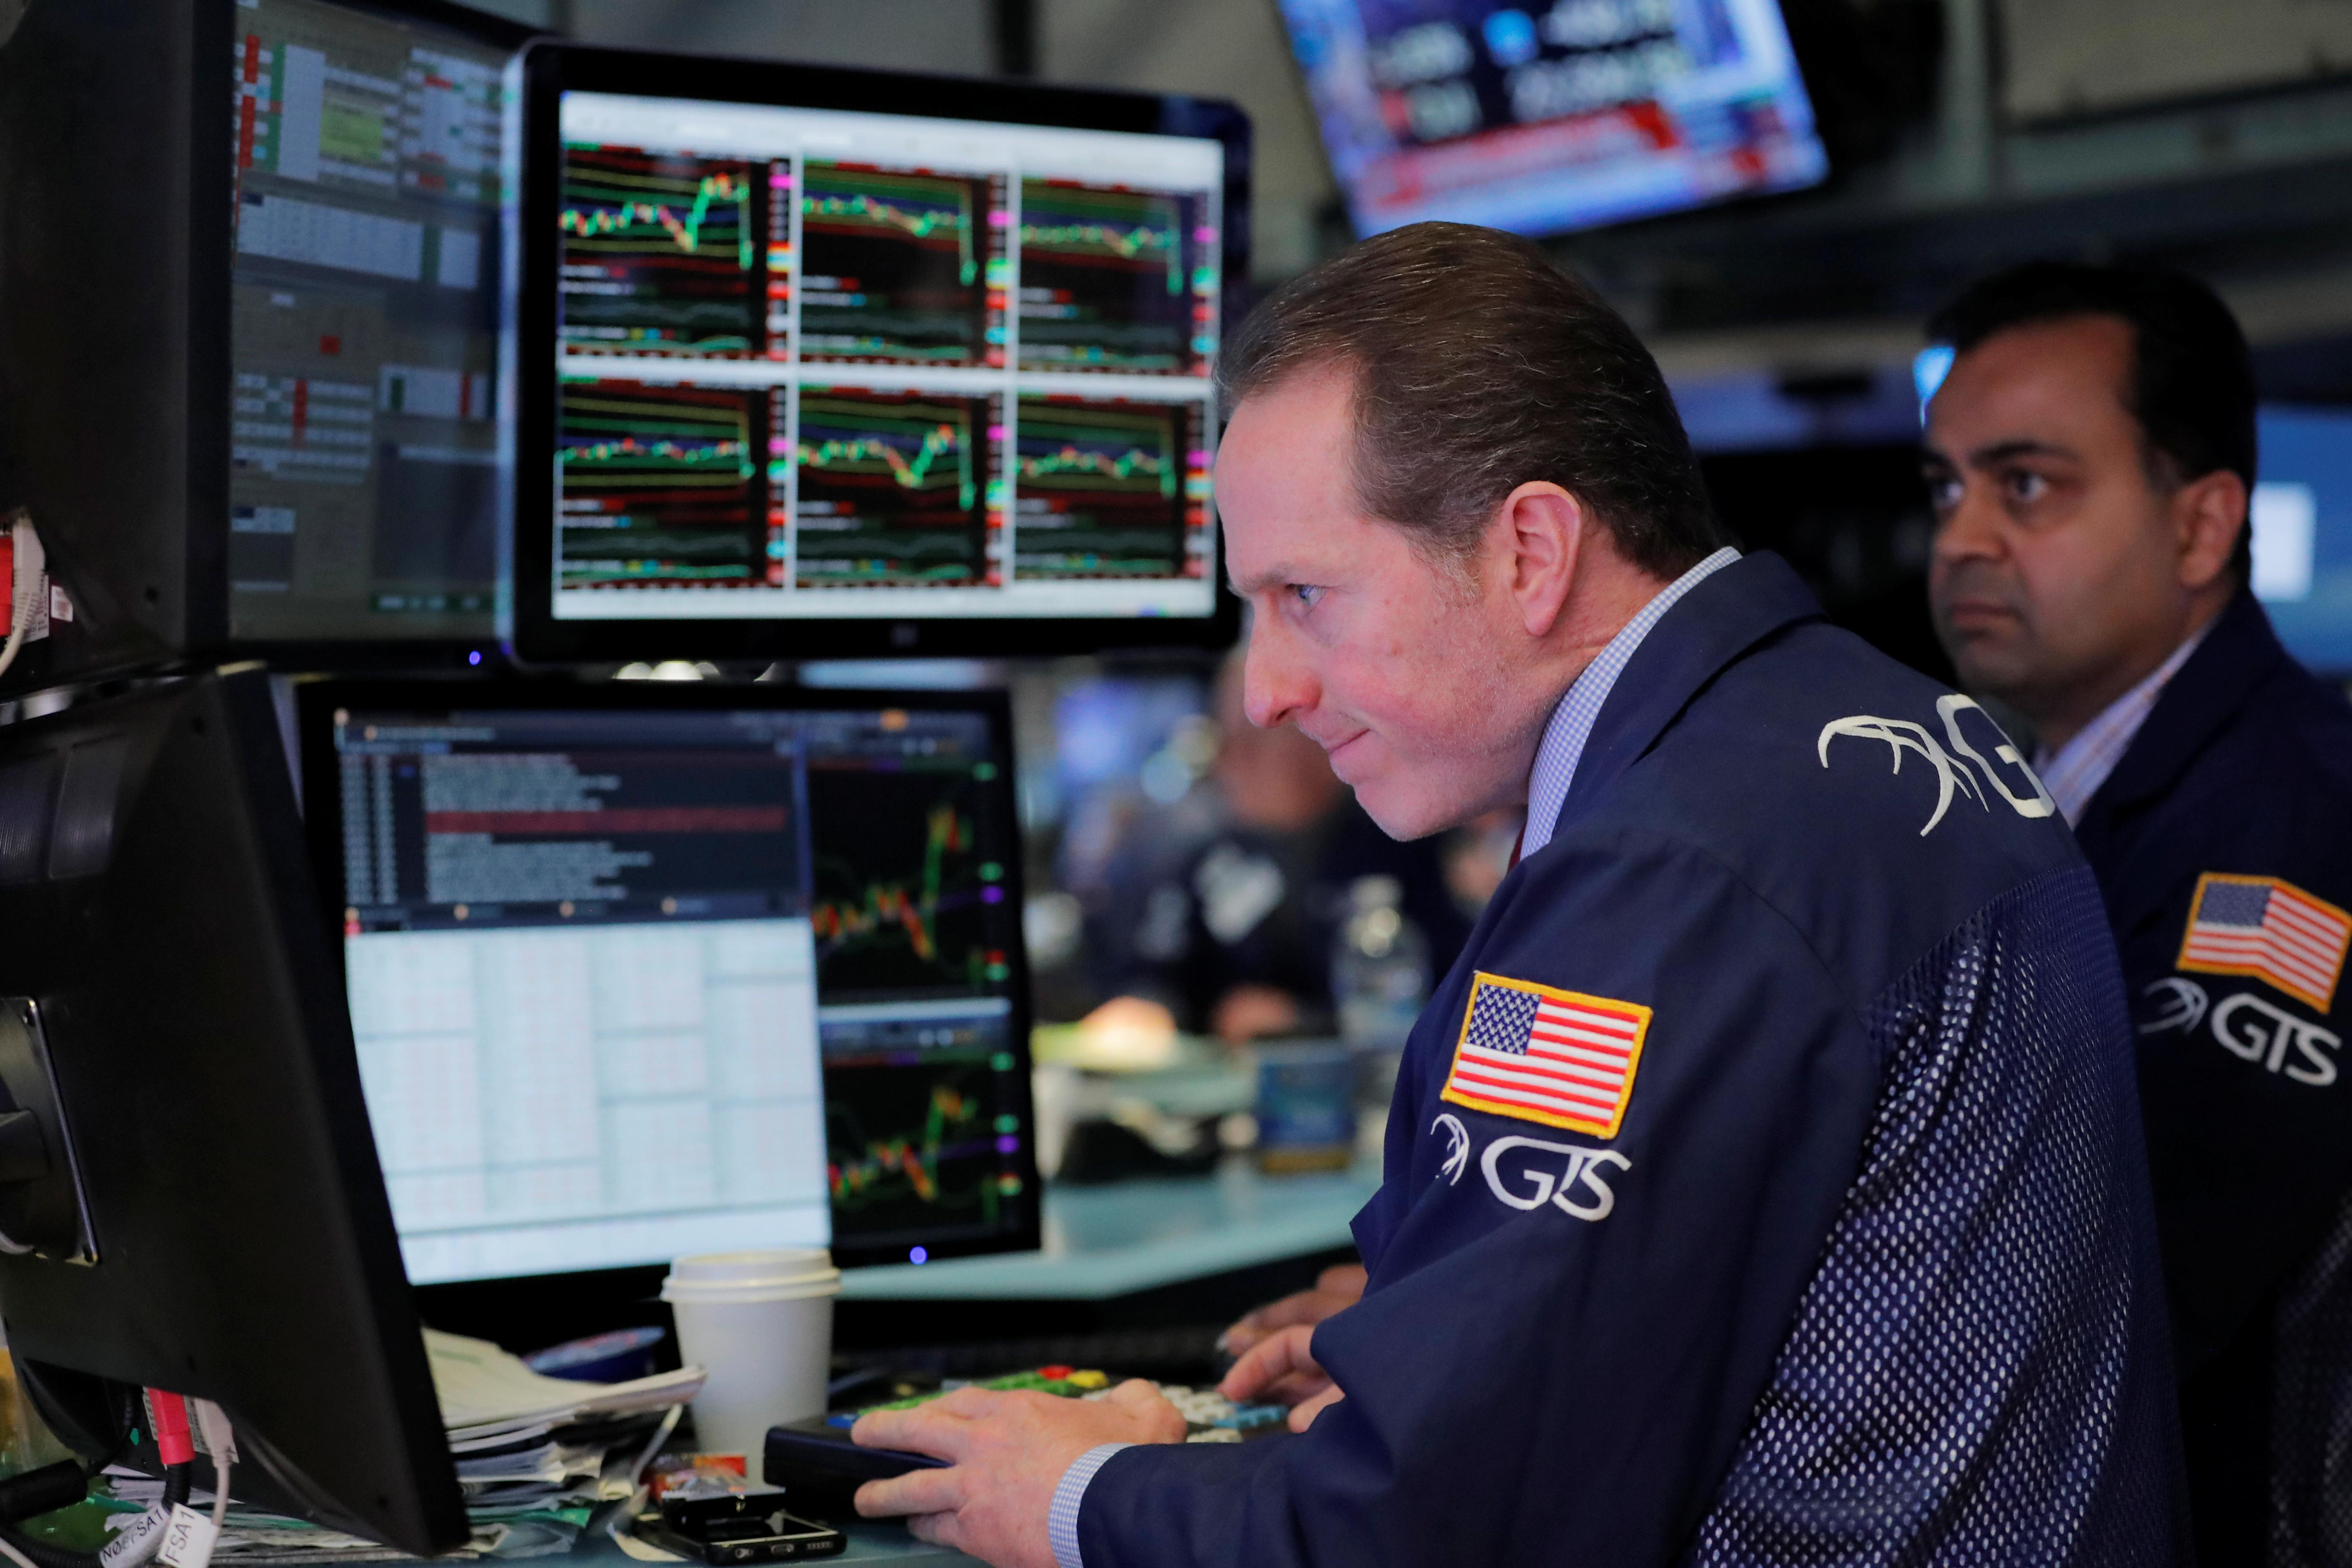 U.S. options hedging muted even as stocks approach February lows